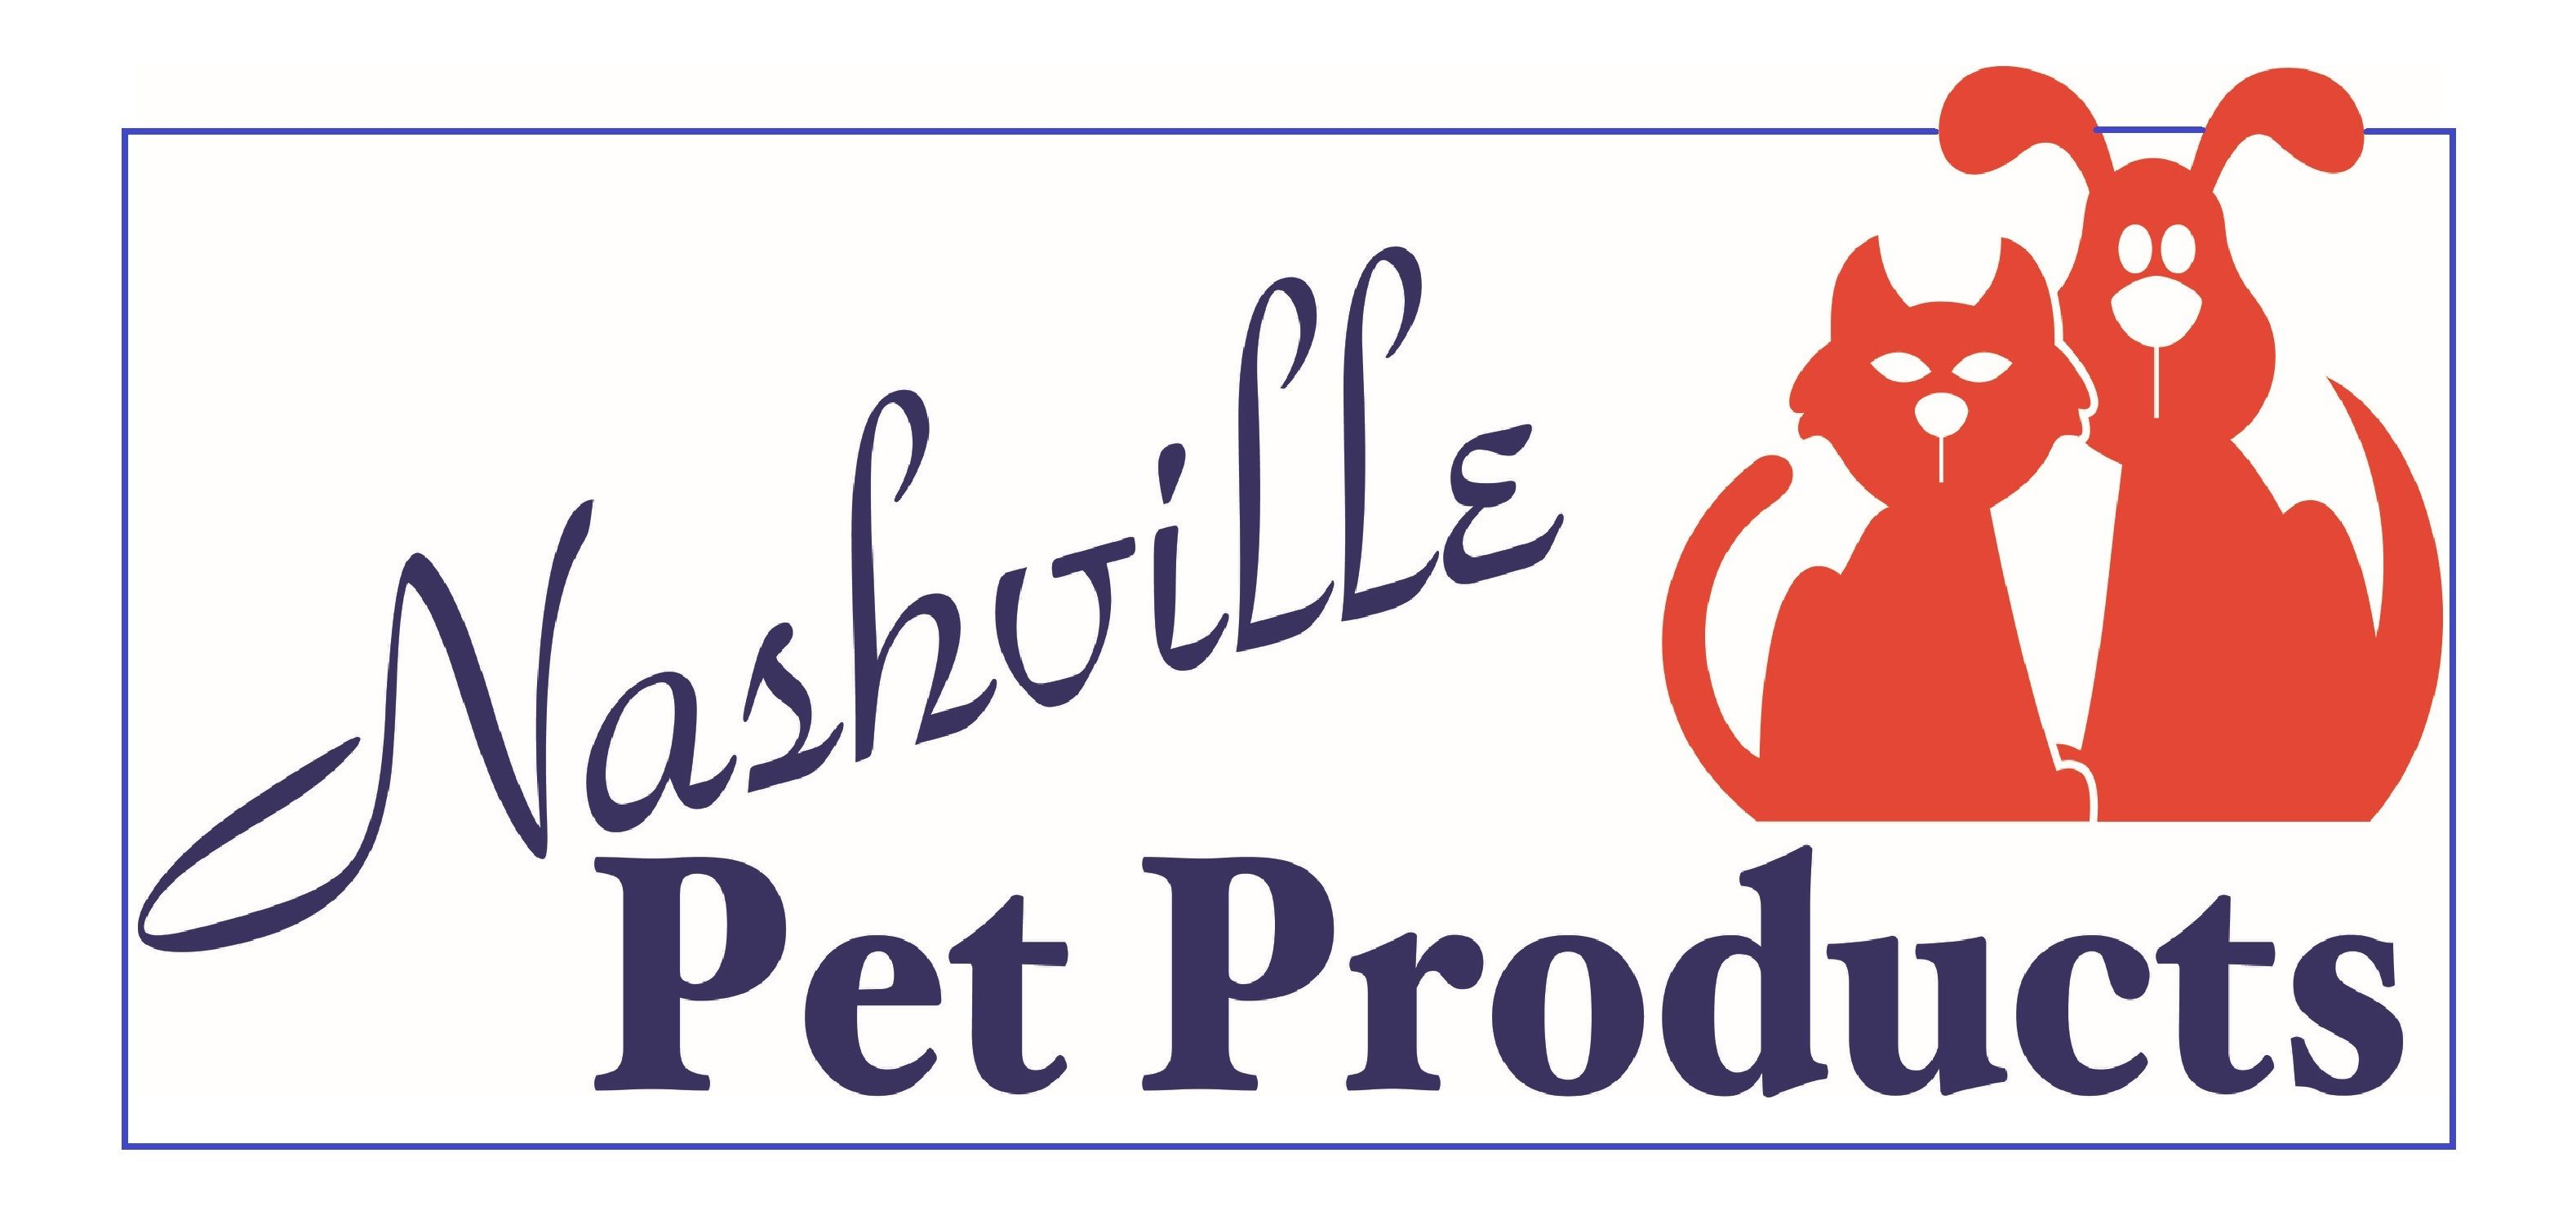 Pin by Nashville Pet Products on www.nashvillepetproducts